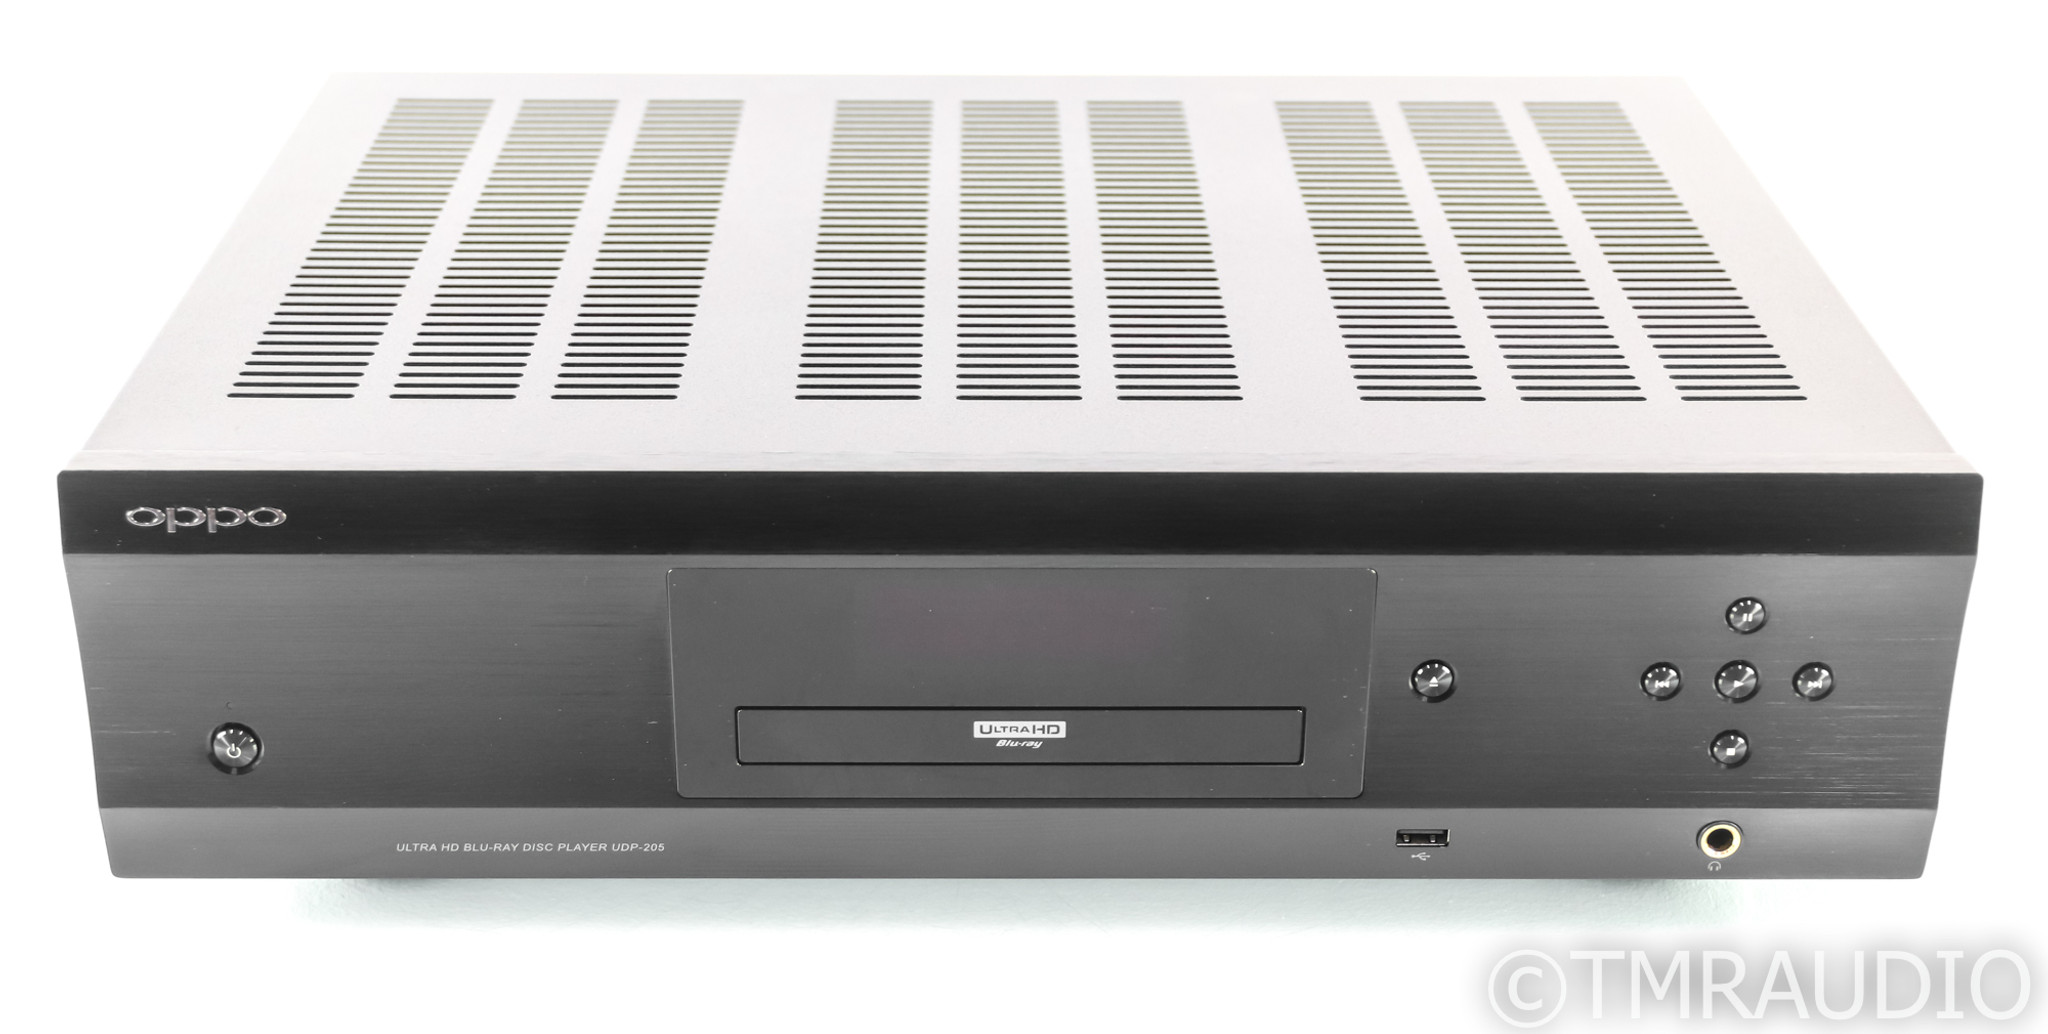 Oppo Udp 205 4k Ultra Hd Universal Blu Ray Player Udp205 Black Remote The Music Room